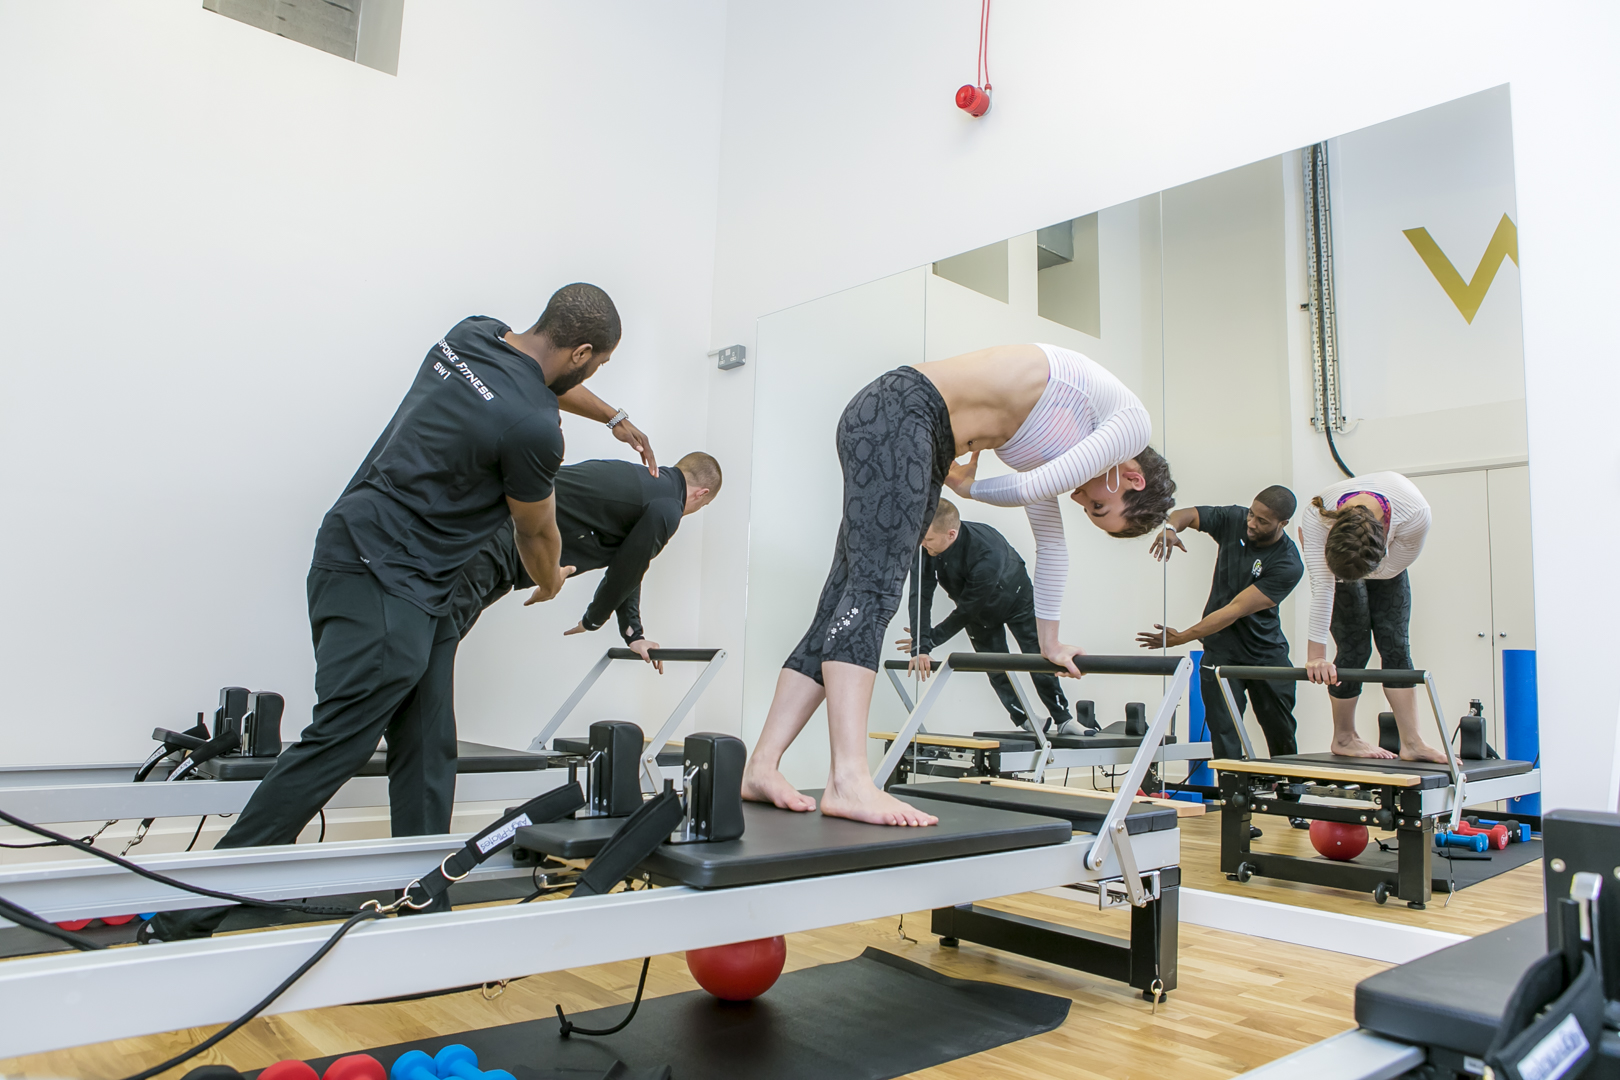 What To Expect From Reformer Pilates Class